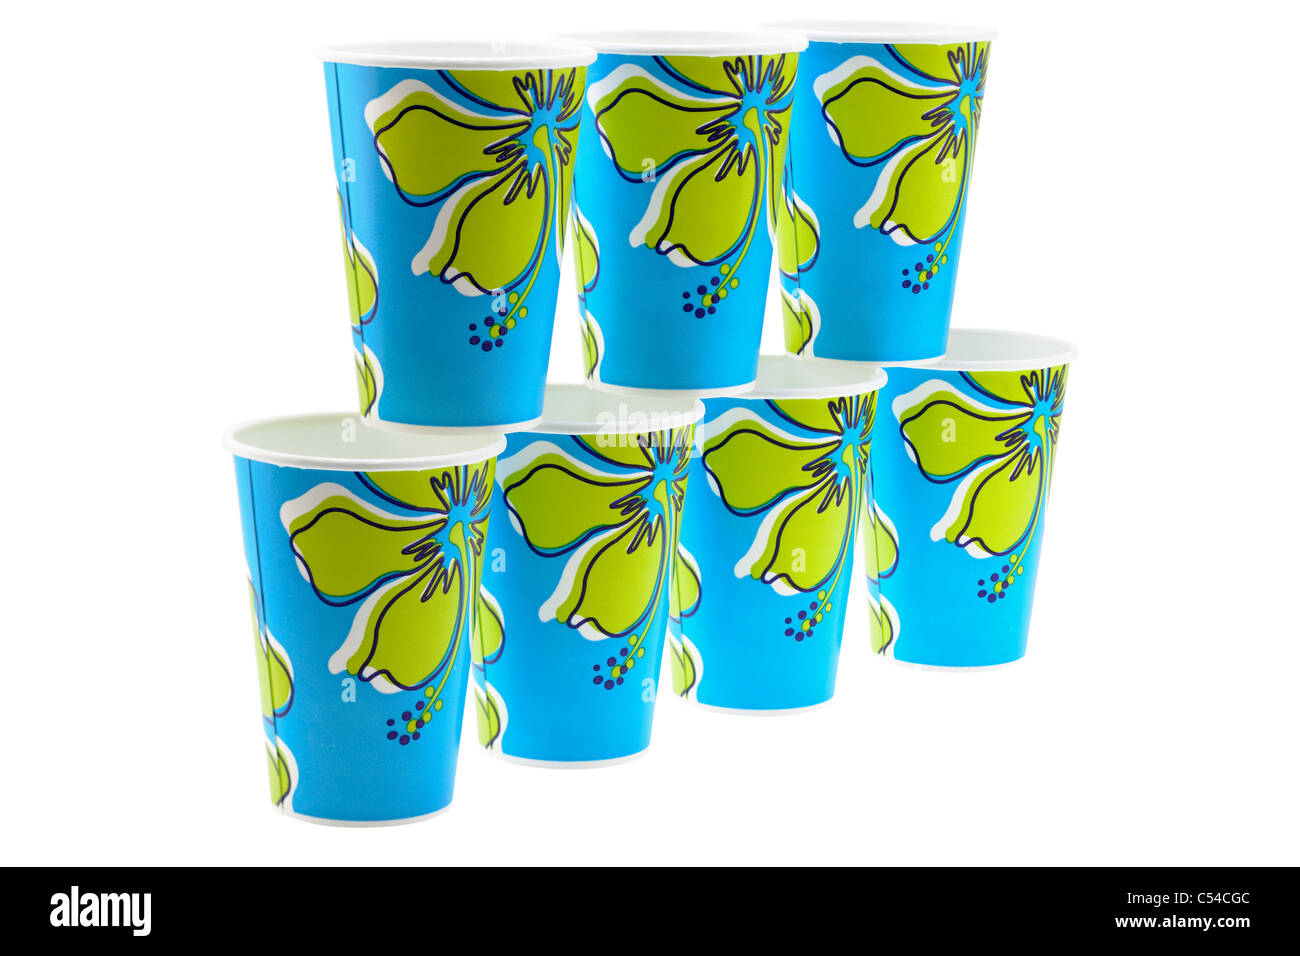 Seven blue and green patterned paper cups - Stock Image